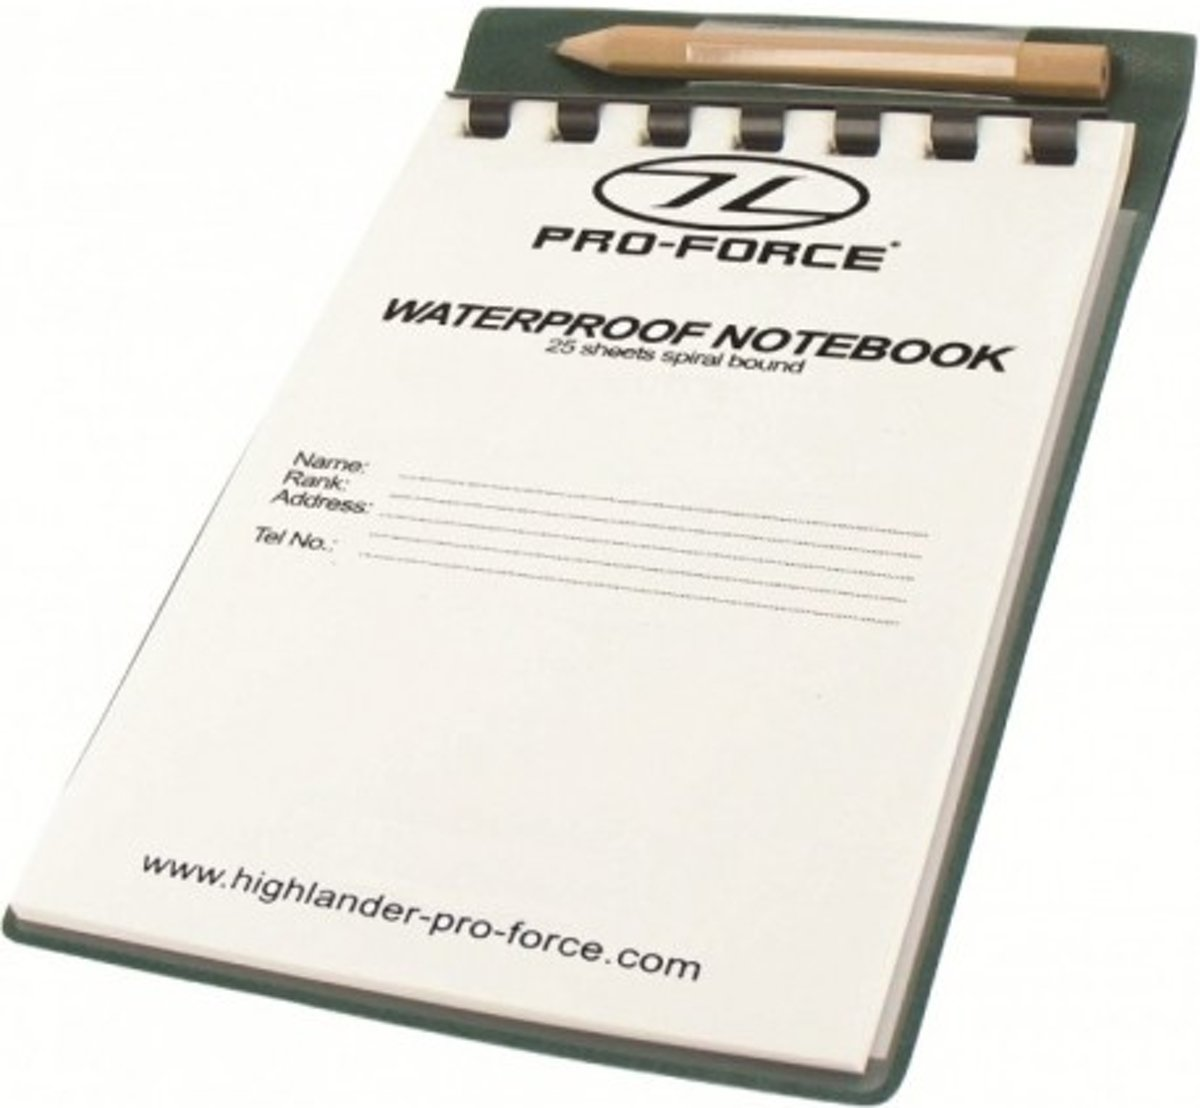 Highlander Waterproof Notebook 15X10.5Cm